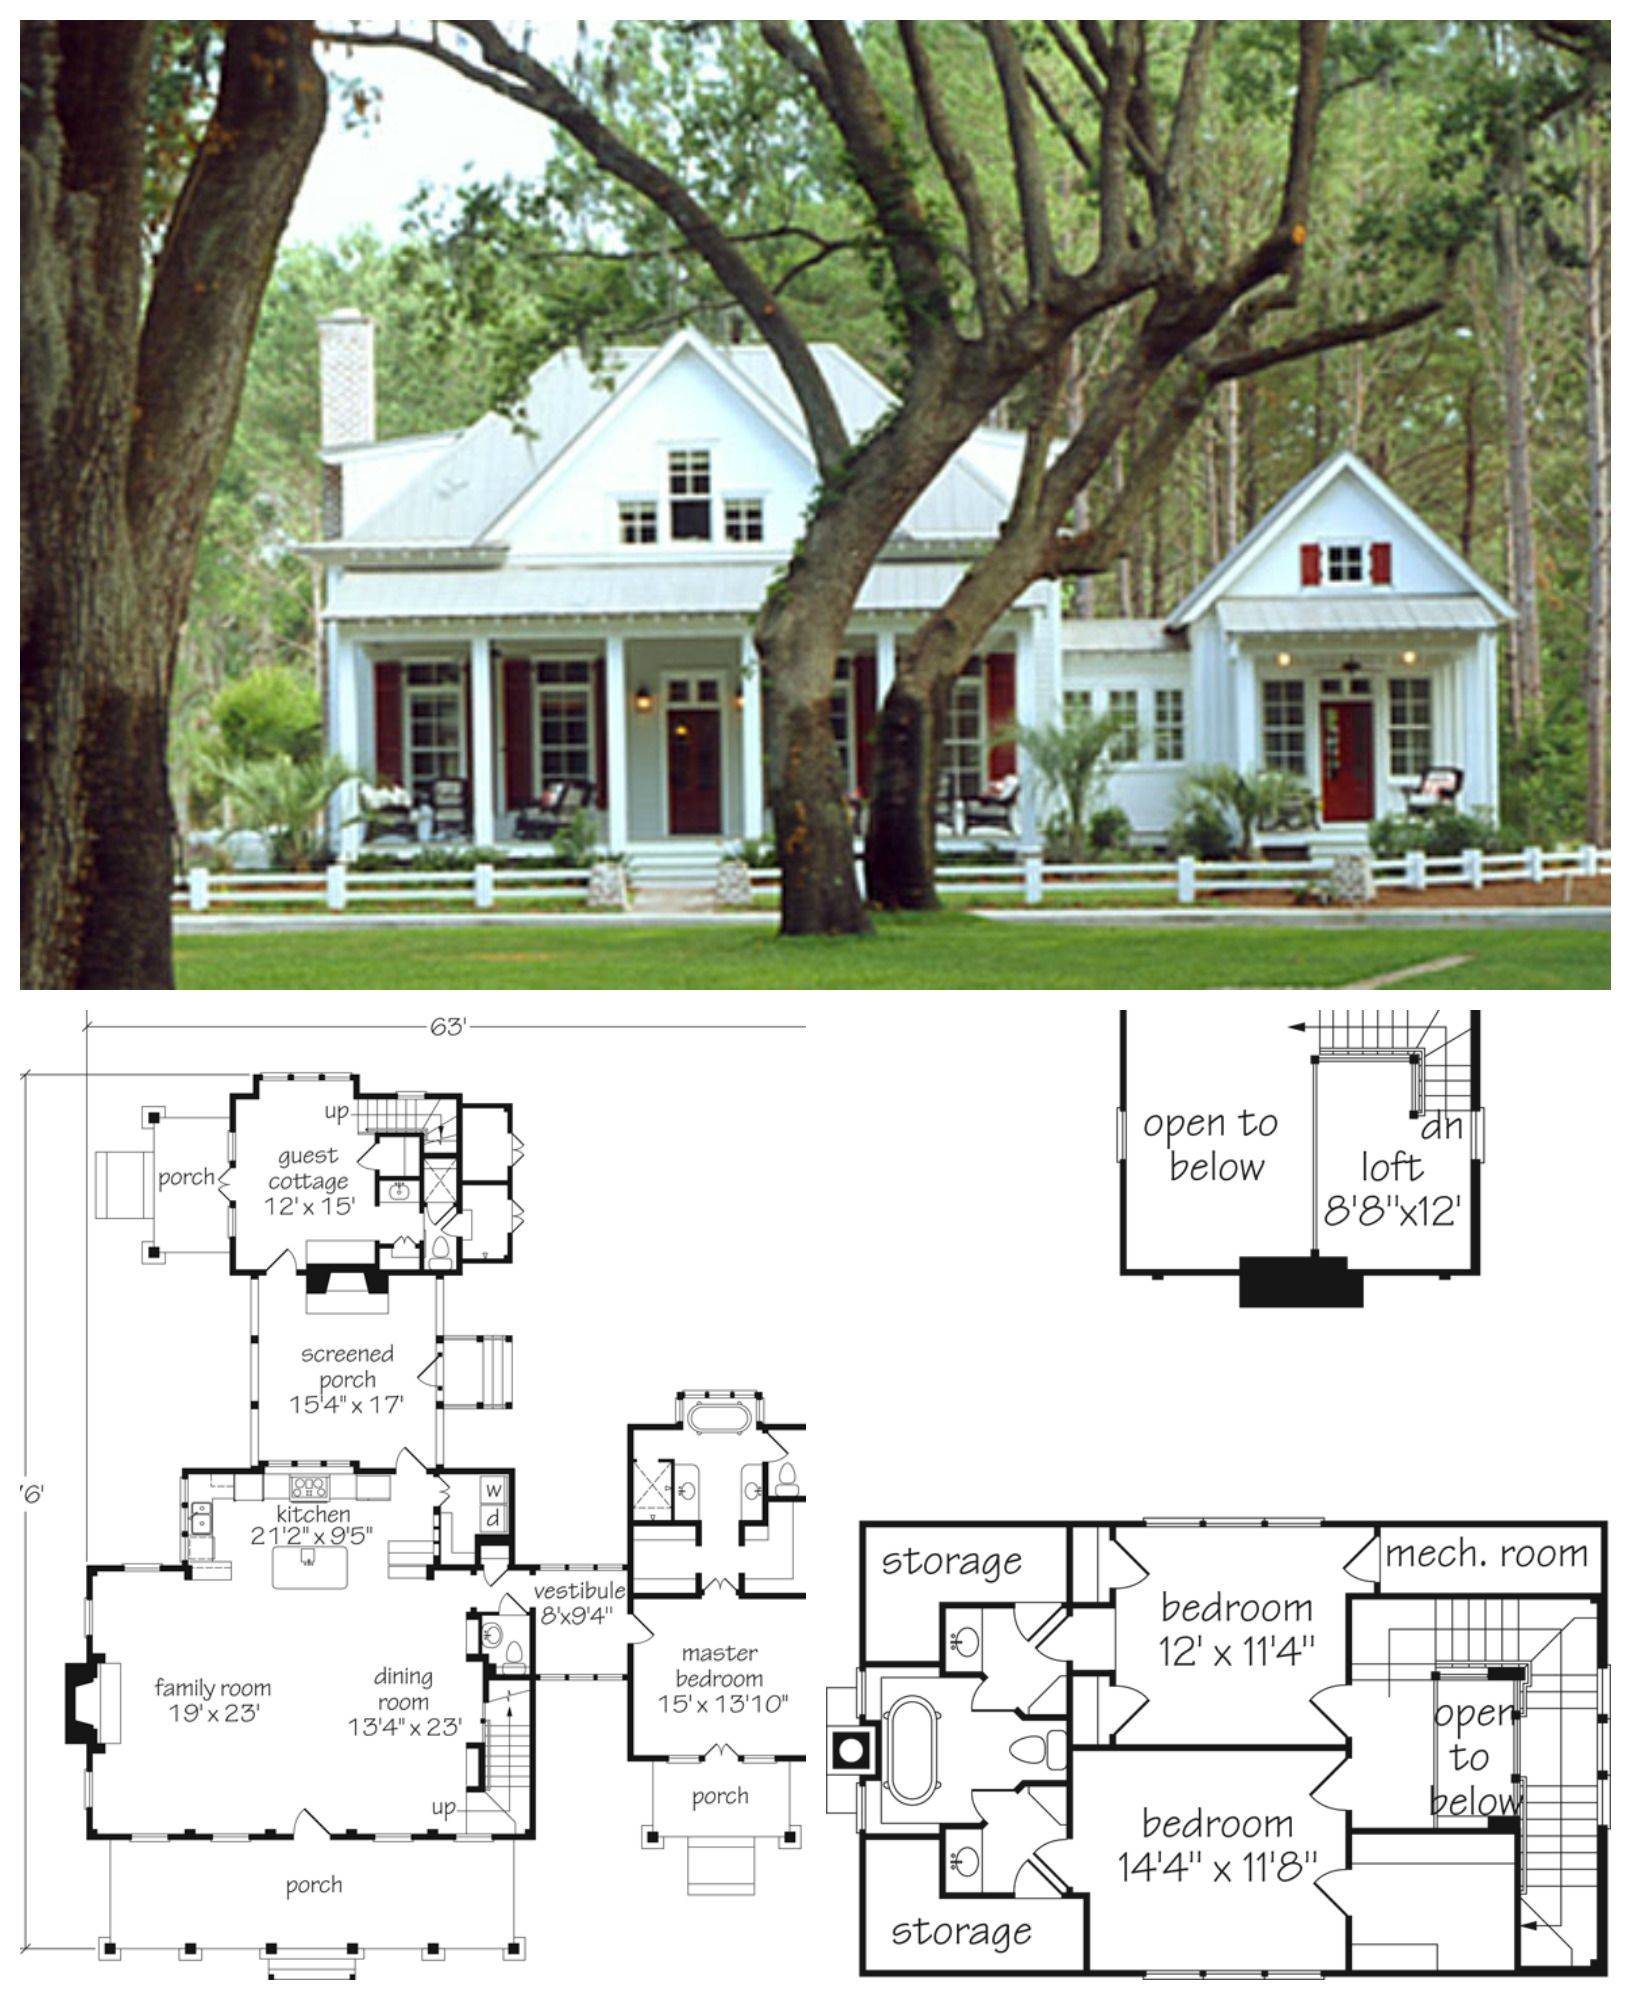 Darling 2000 Sq Ft Cottage With Private Master Bedroom And Quaint Guest Cottage In Back Cottage House Plans House Plans Farmhouse Farmhouse Plans